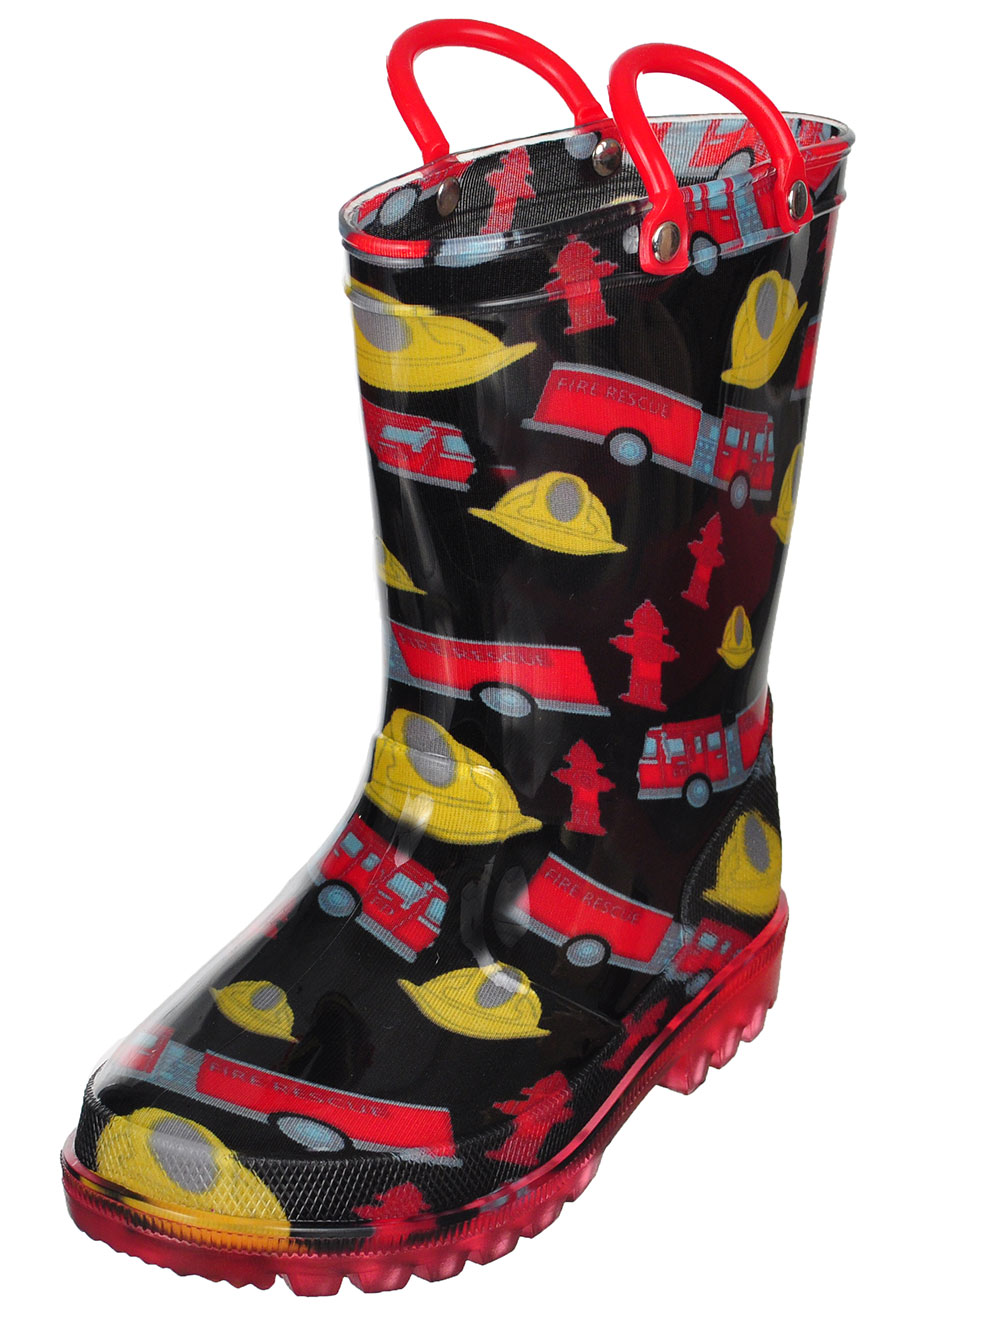 49d41bba79fa Details about Lilly Boys  Light-Up Rubber Rain Boots (Sizes 5 - 12)